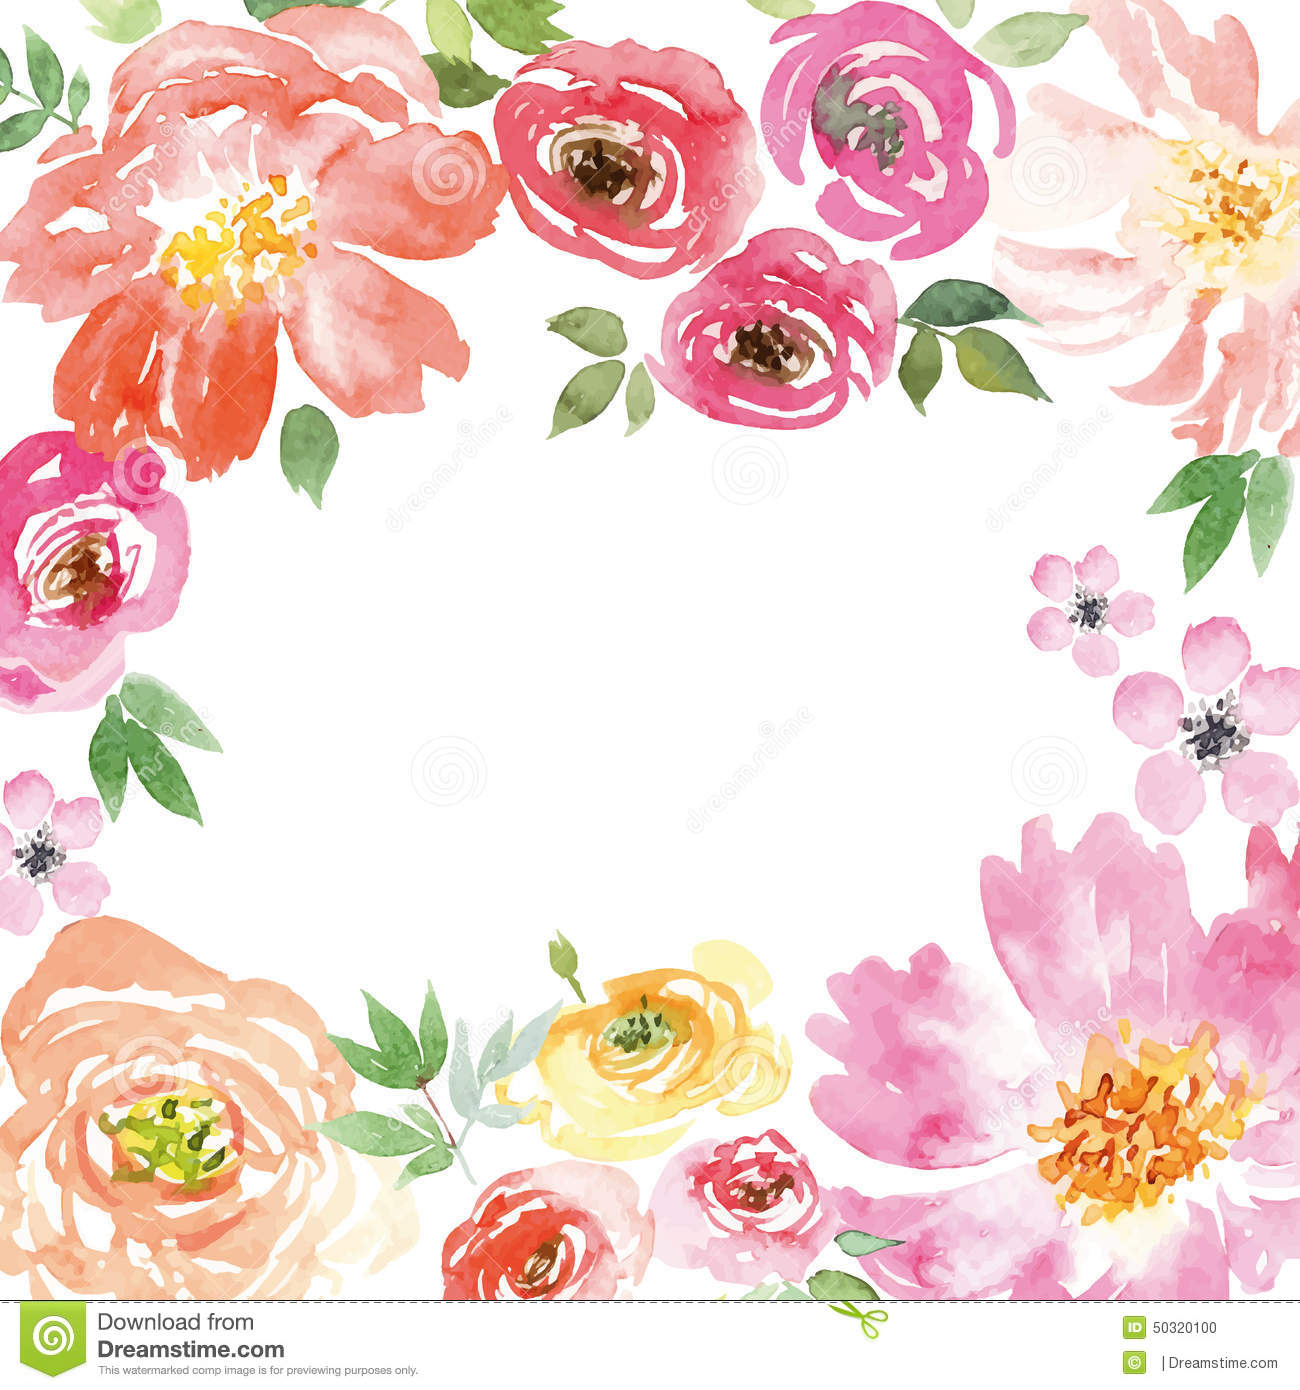 Watercolor Spring Flowers Stock Vector Illustration Of Ground 50320100